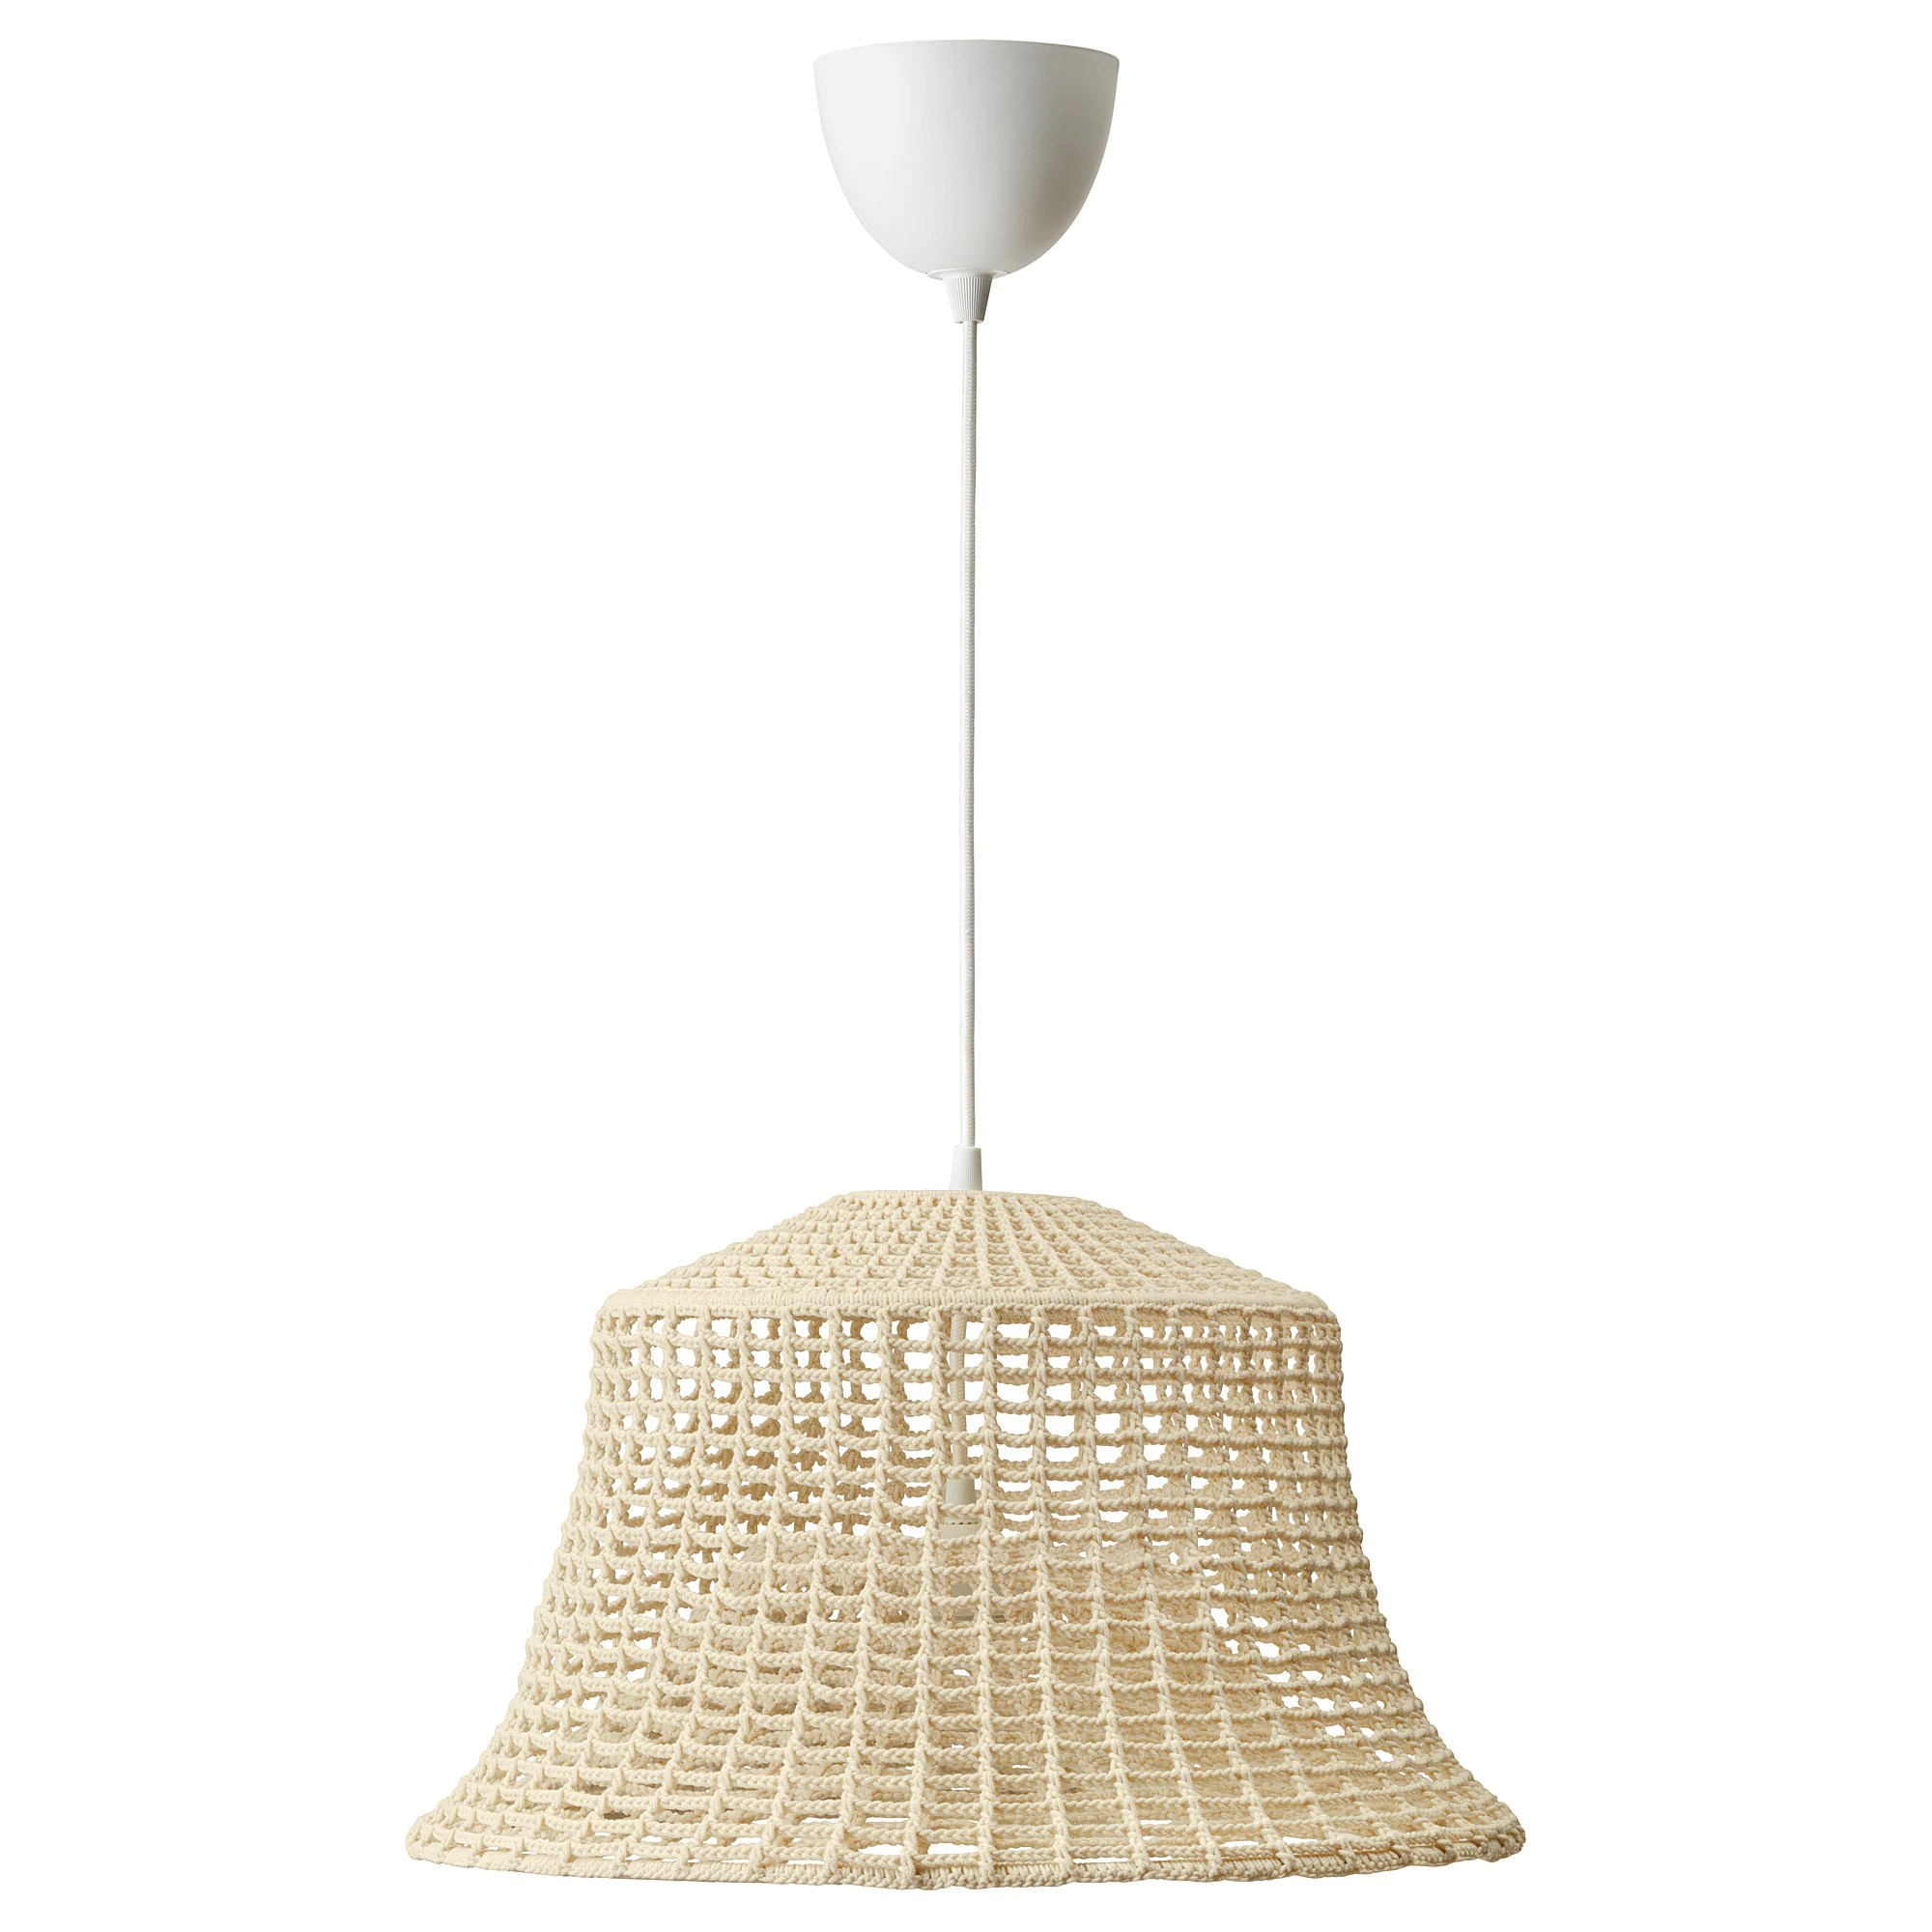 Led Hanglamp Ikea Industriell Pendant Lamp Natural Beige